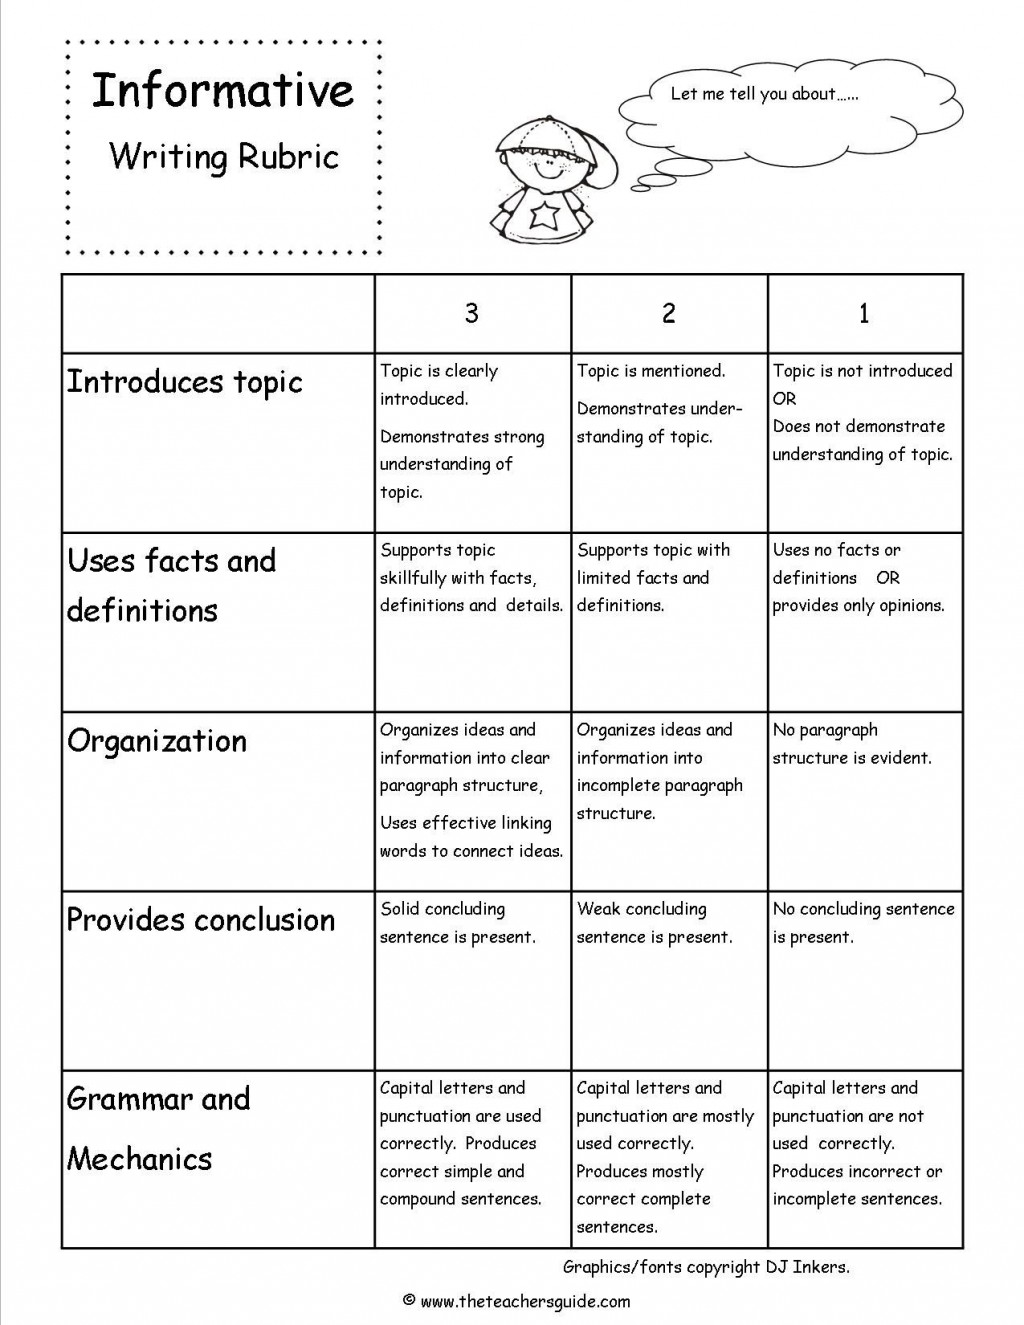 010 Rubrics For Essay Breathtaking Pdf Writing In Social Studies Large